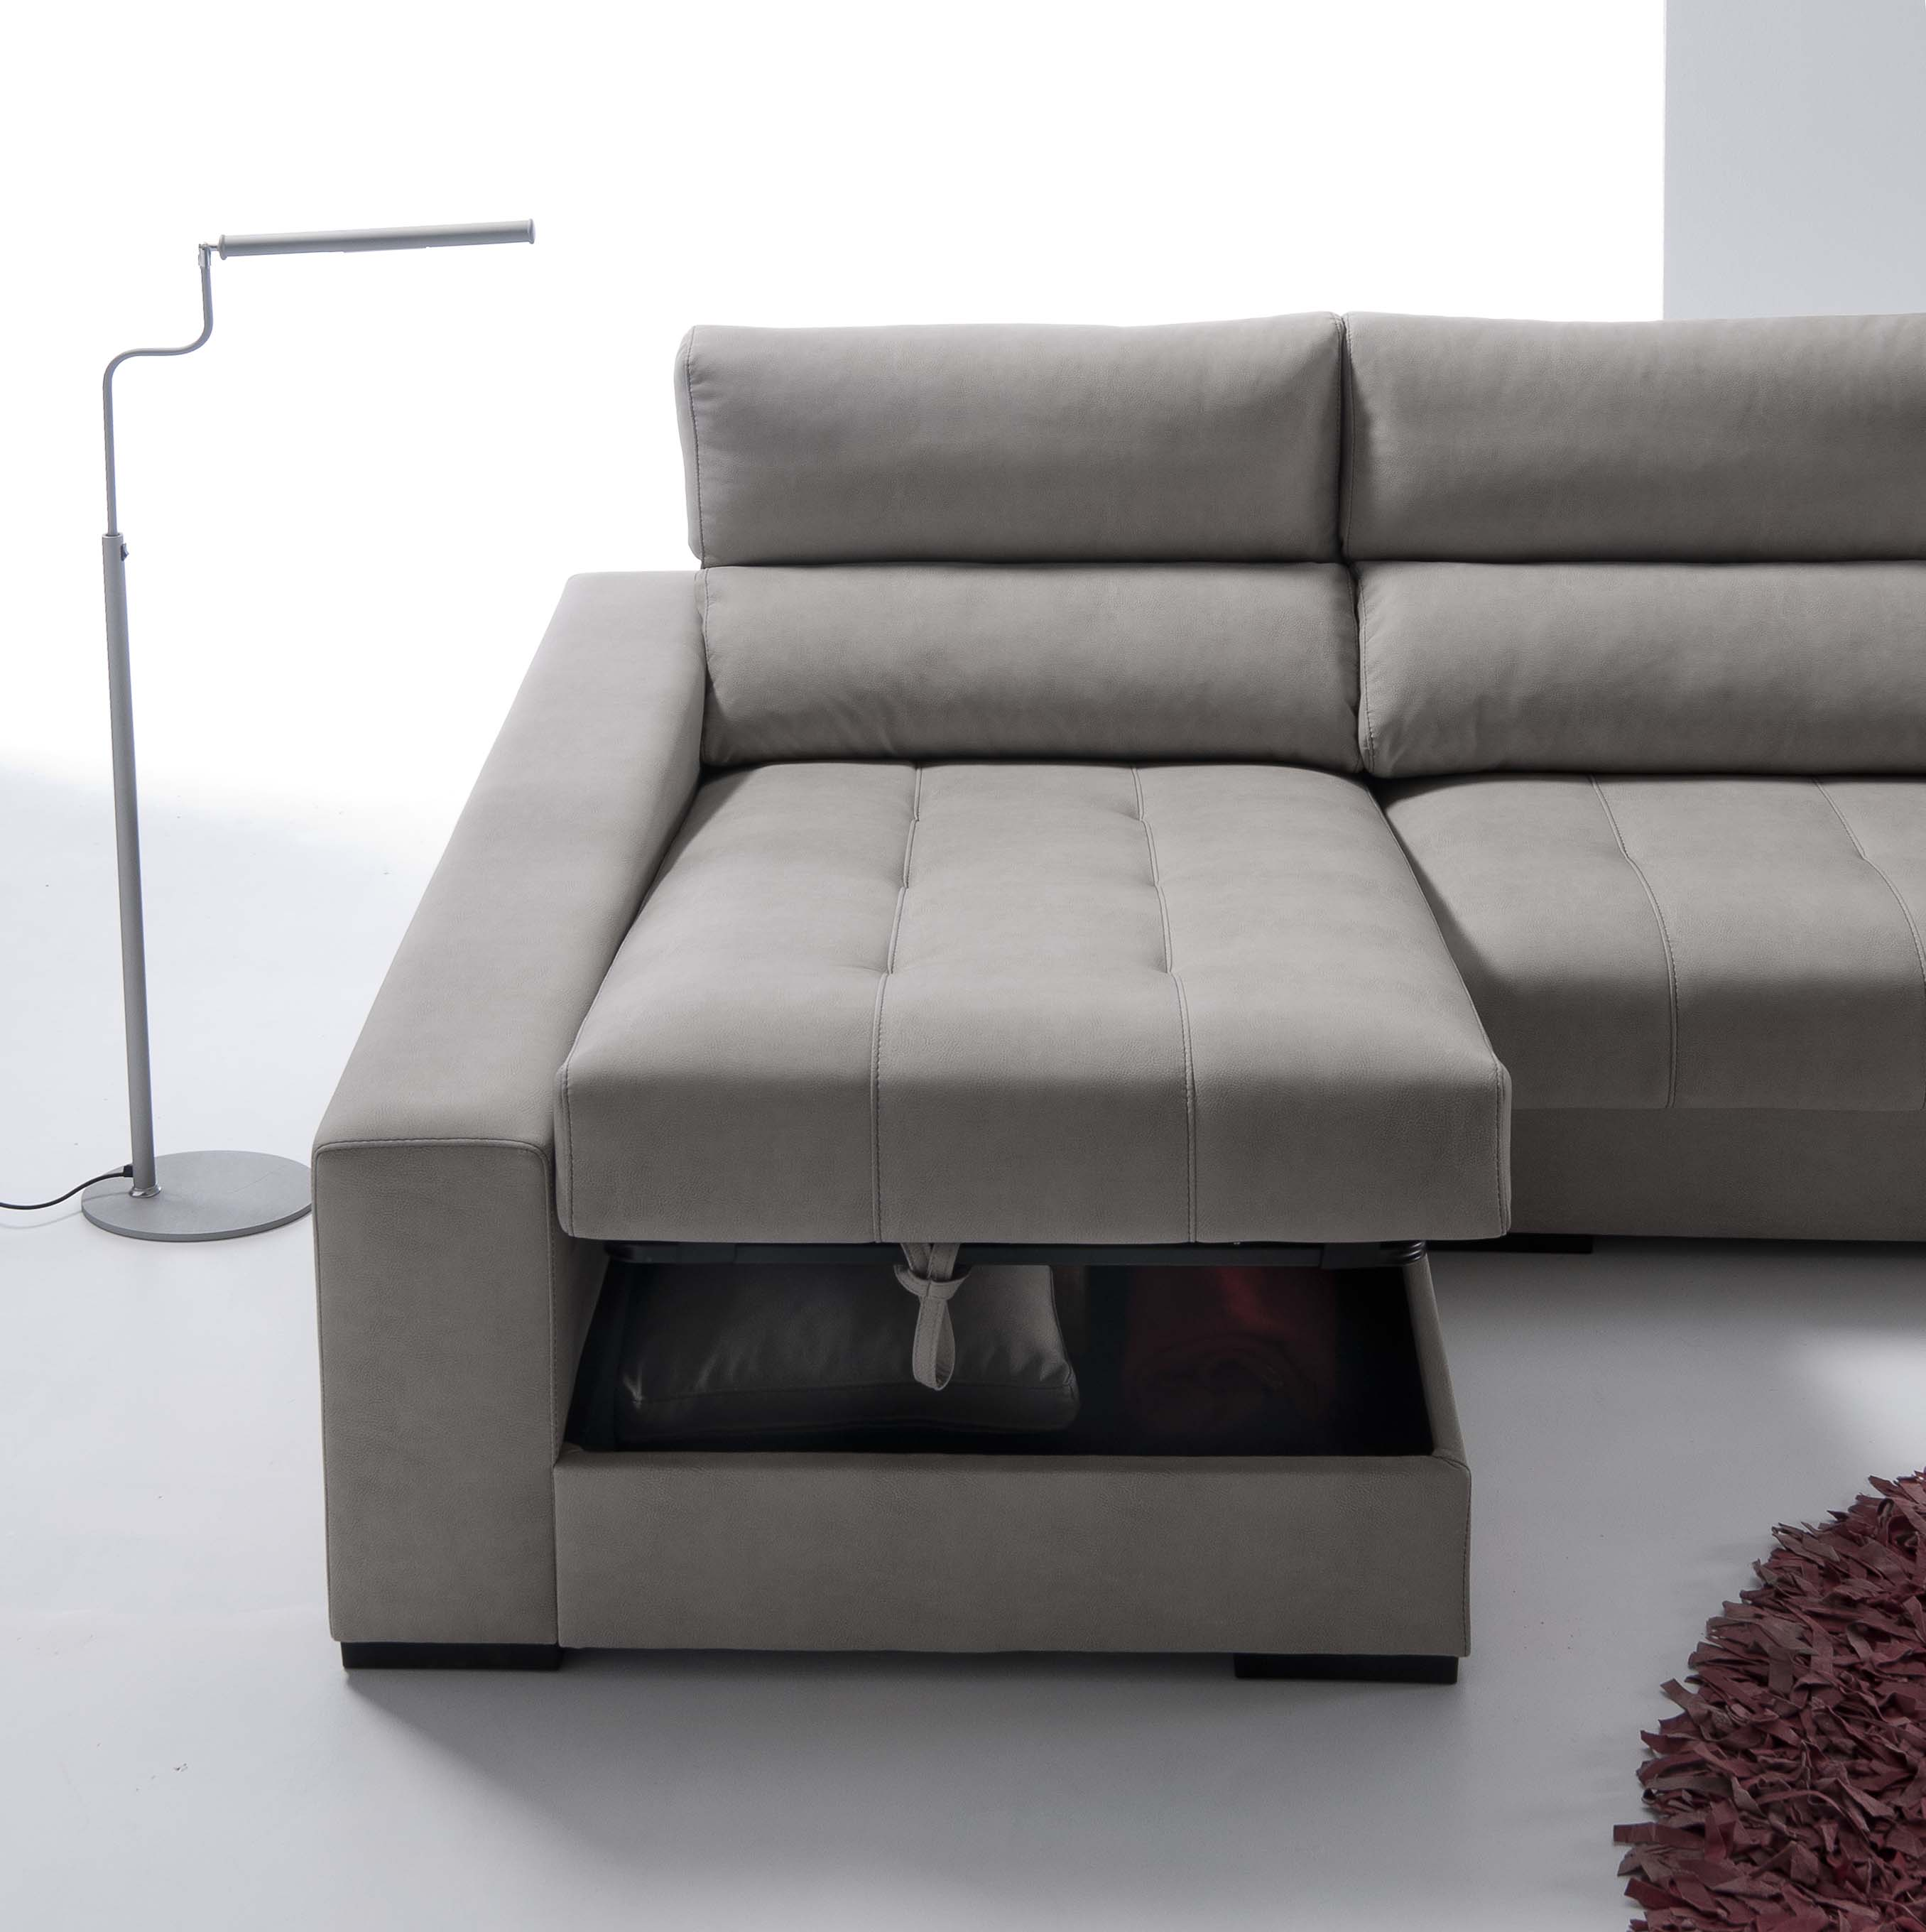 Sof con arc n en la chaiselongue for Sofa cama con almacenaje